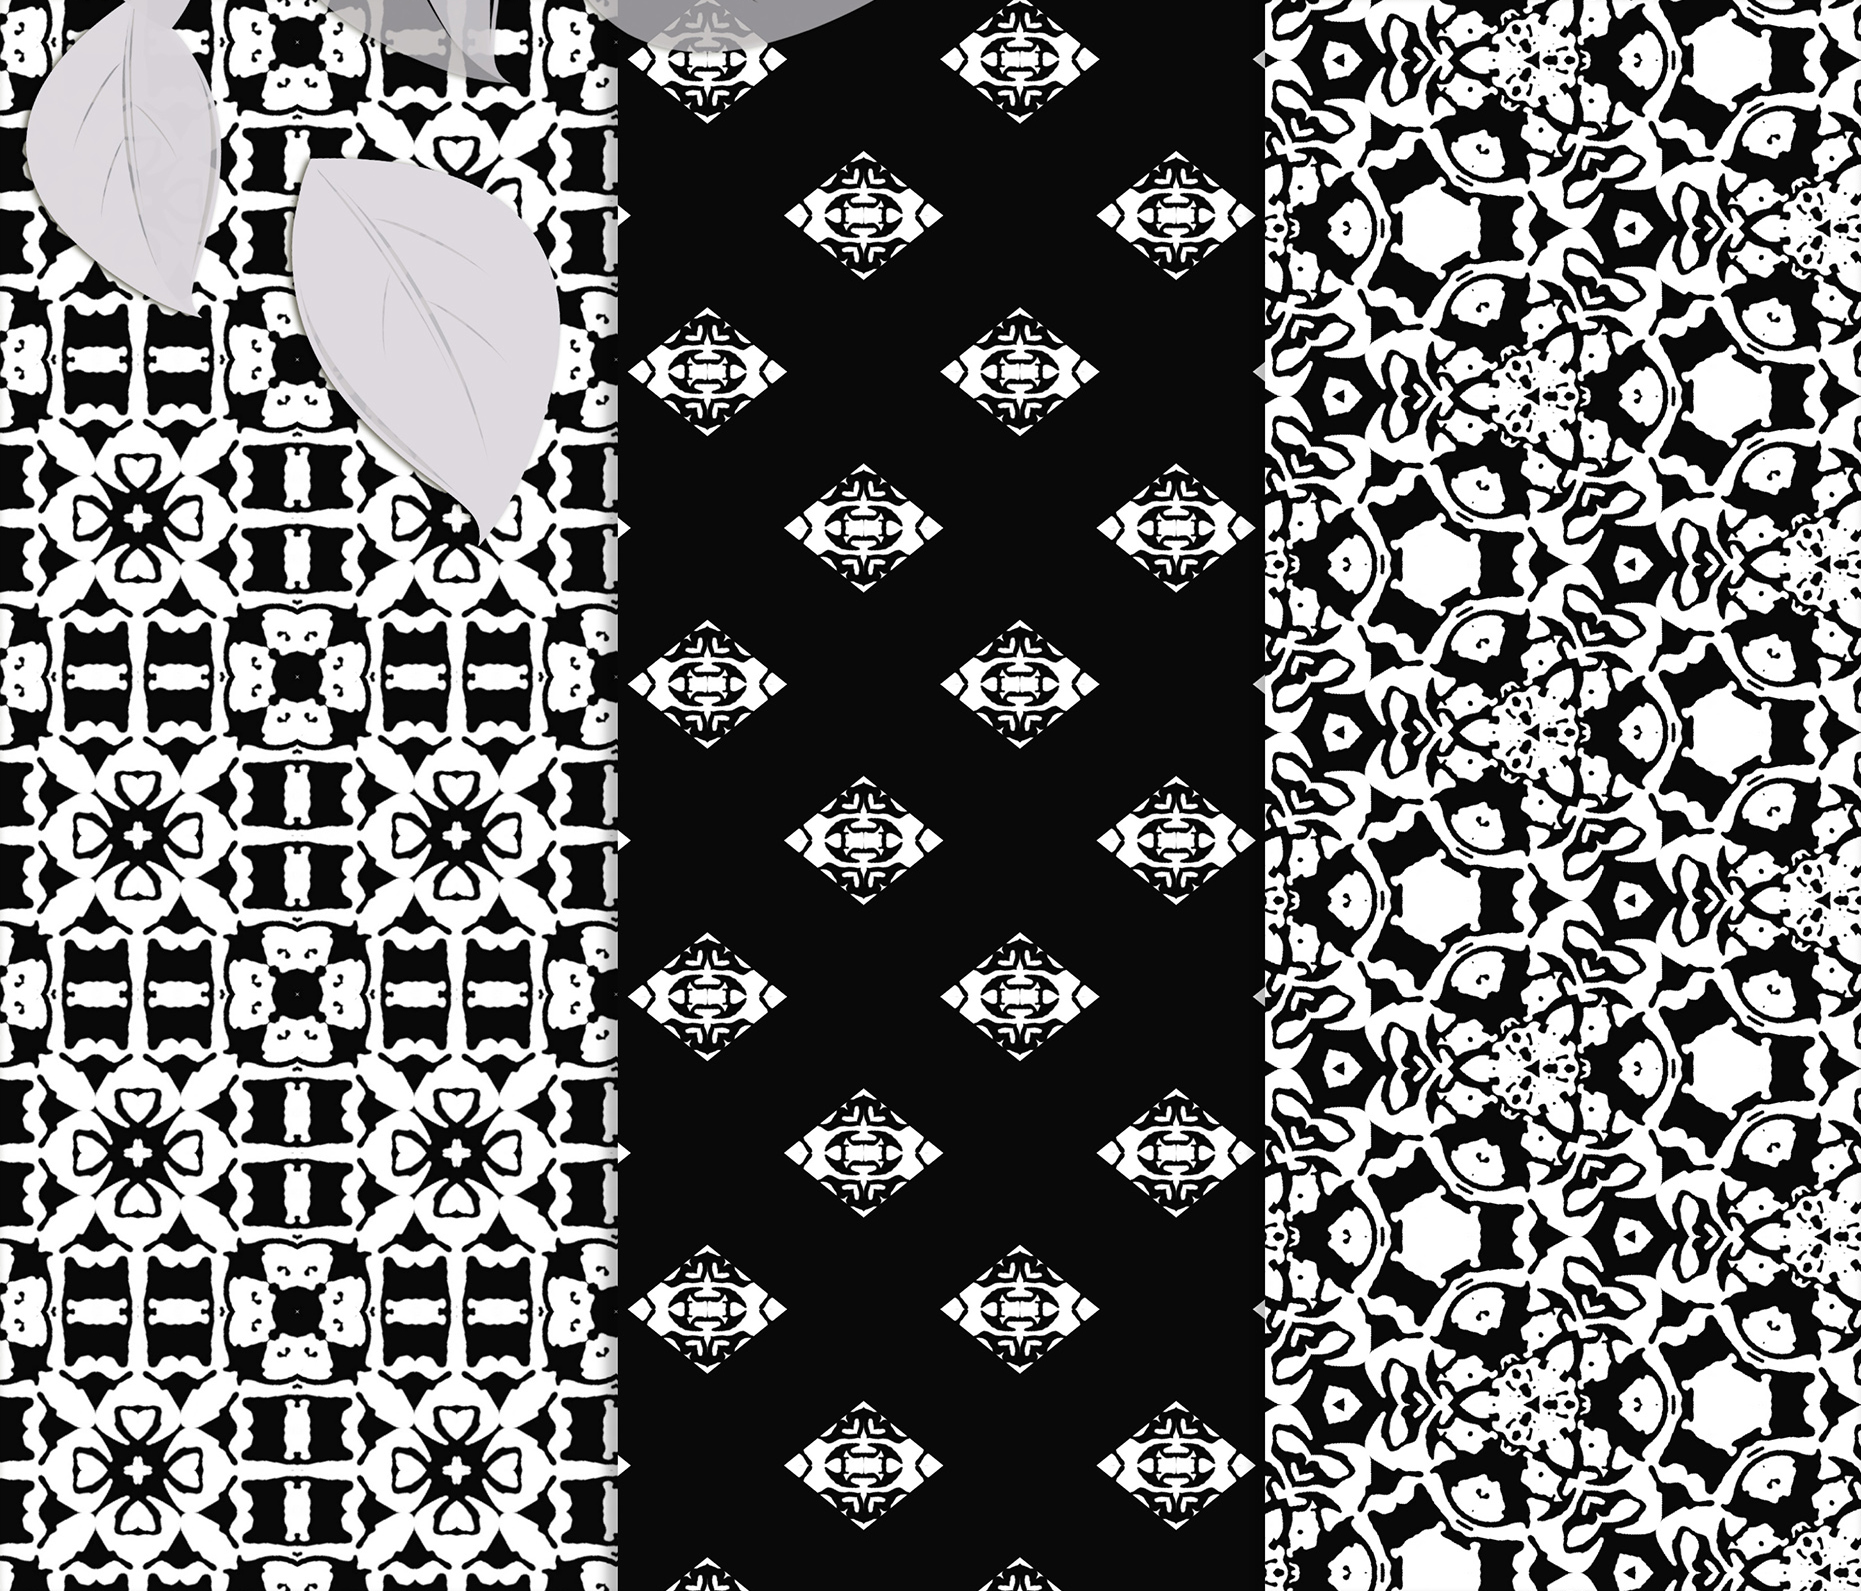 Black and white Digital Scrapbook Paper example image 5